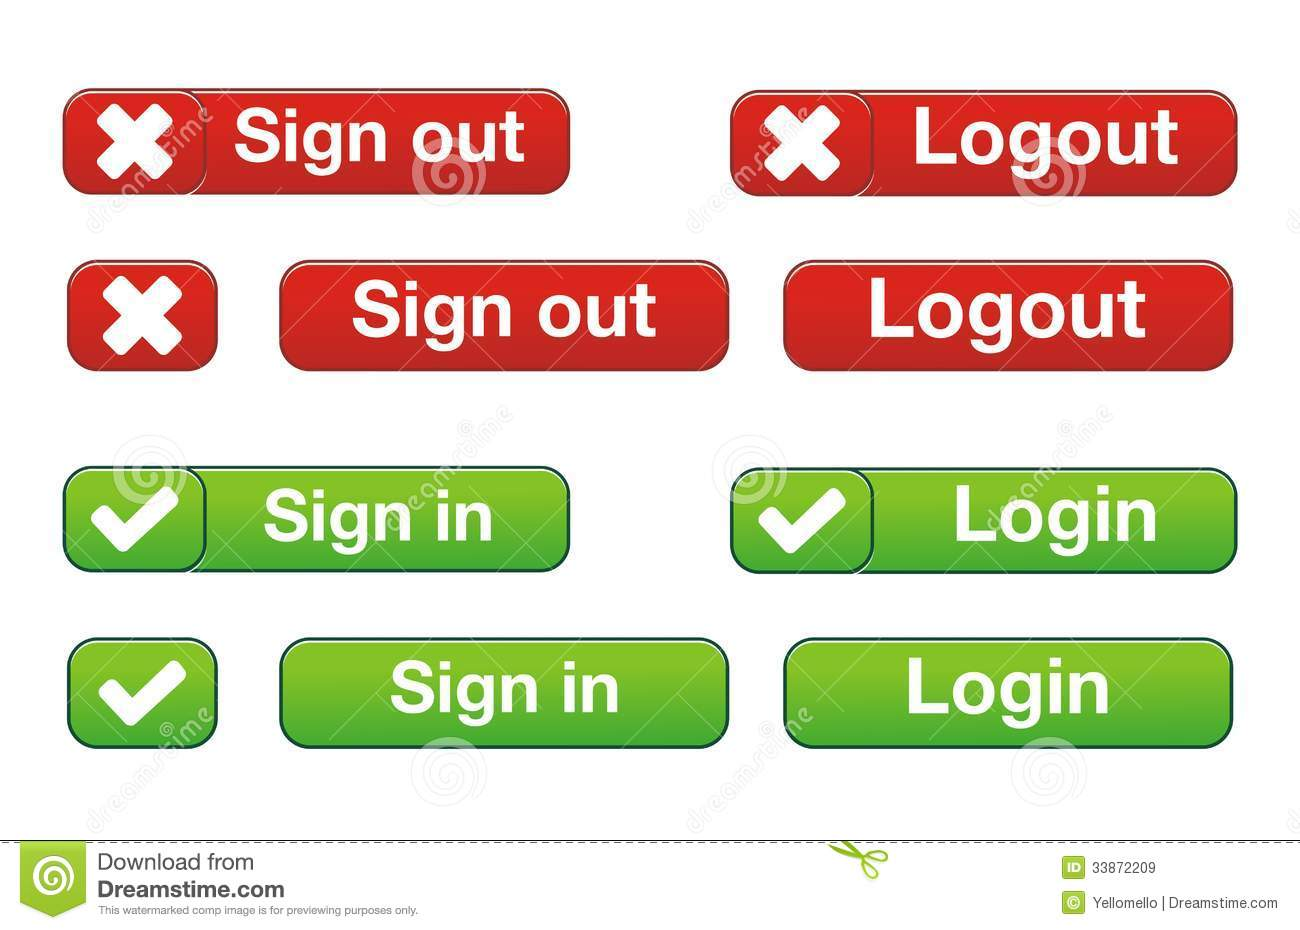 login logout Logout the method fblogout() logs the user out of your site and, in some cases, facebook a person logs into another app and into facebook as part of the other app's login flow, then logs into your app upon logging out from either app, the user is logged out of facebook.